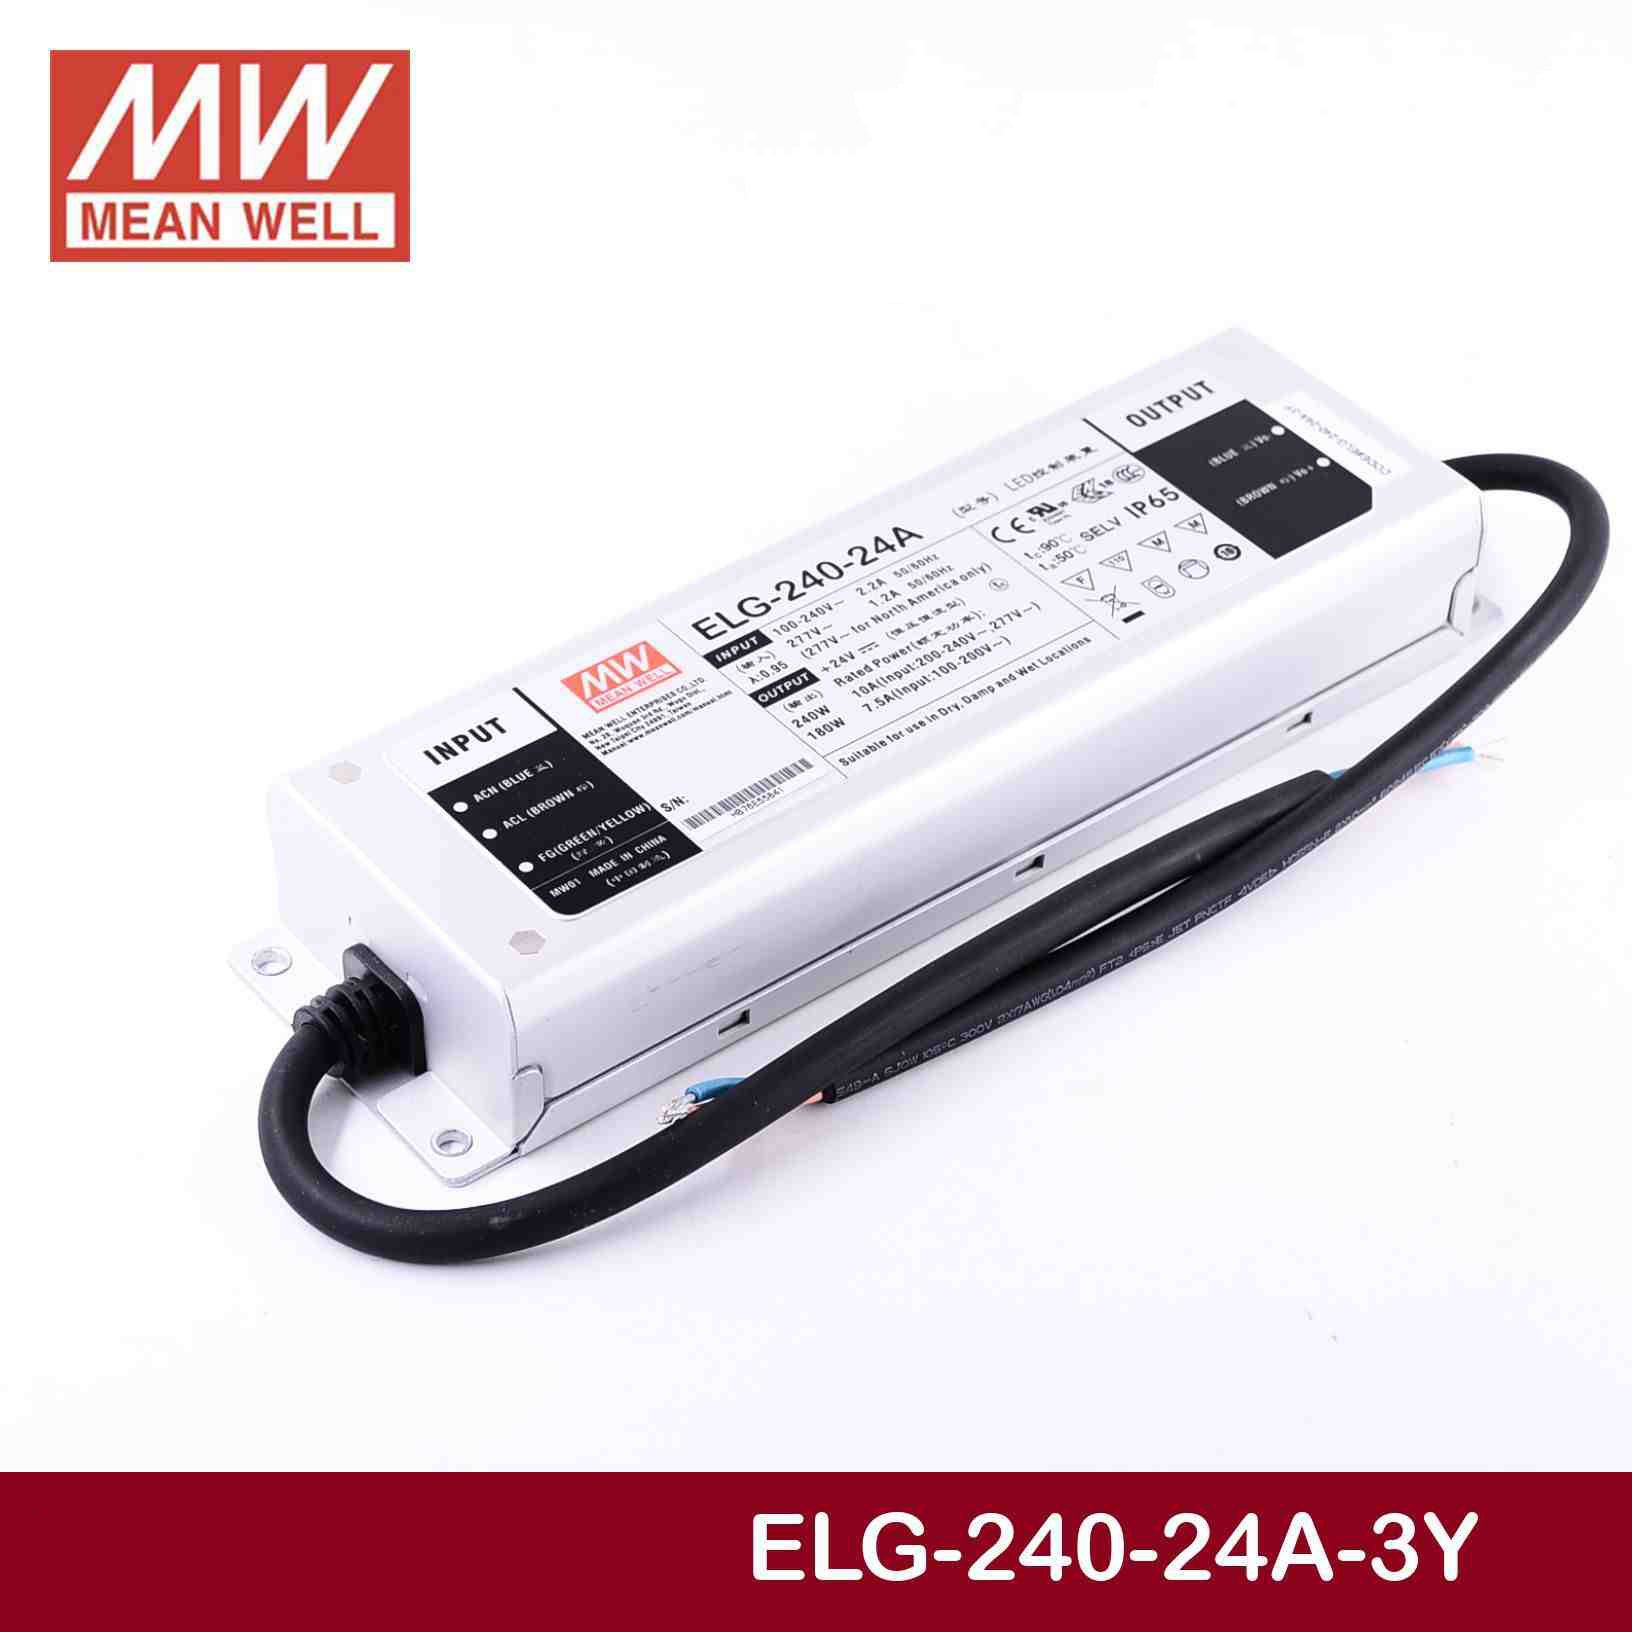 ELG-240-24A-3Y  Taiwan Meanwell 240W24V waterproof power LED street lighting adjustable current 10AELG-240-24A-3Y  Taiwan Meanwell 240W24V waterproof power LED street lighting adjustable current 10A